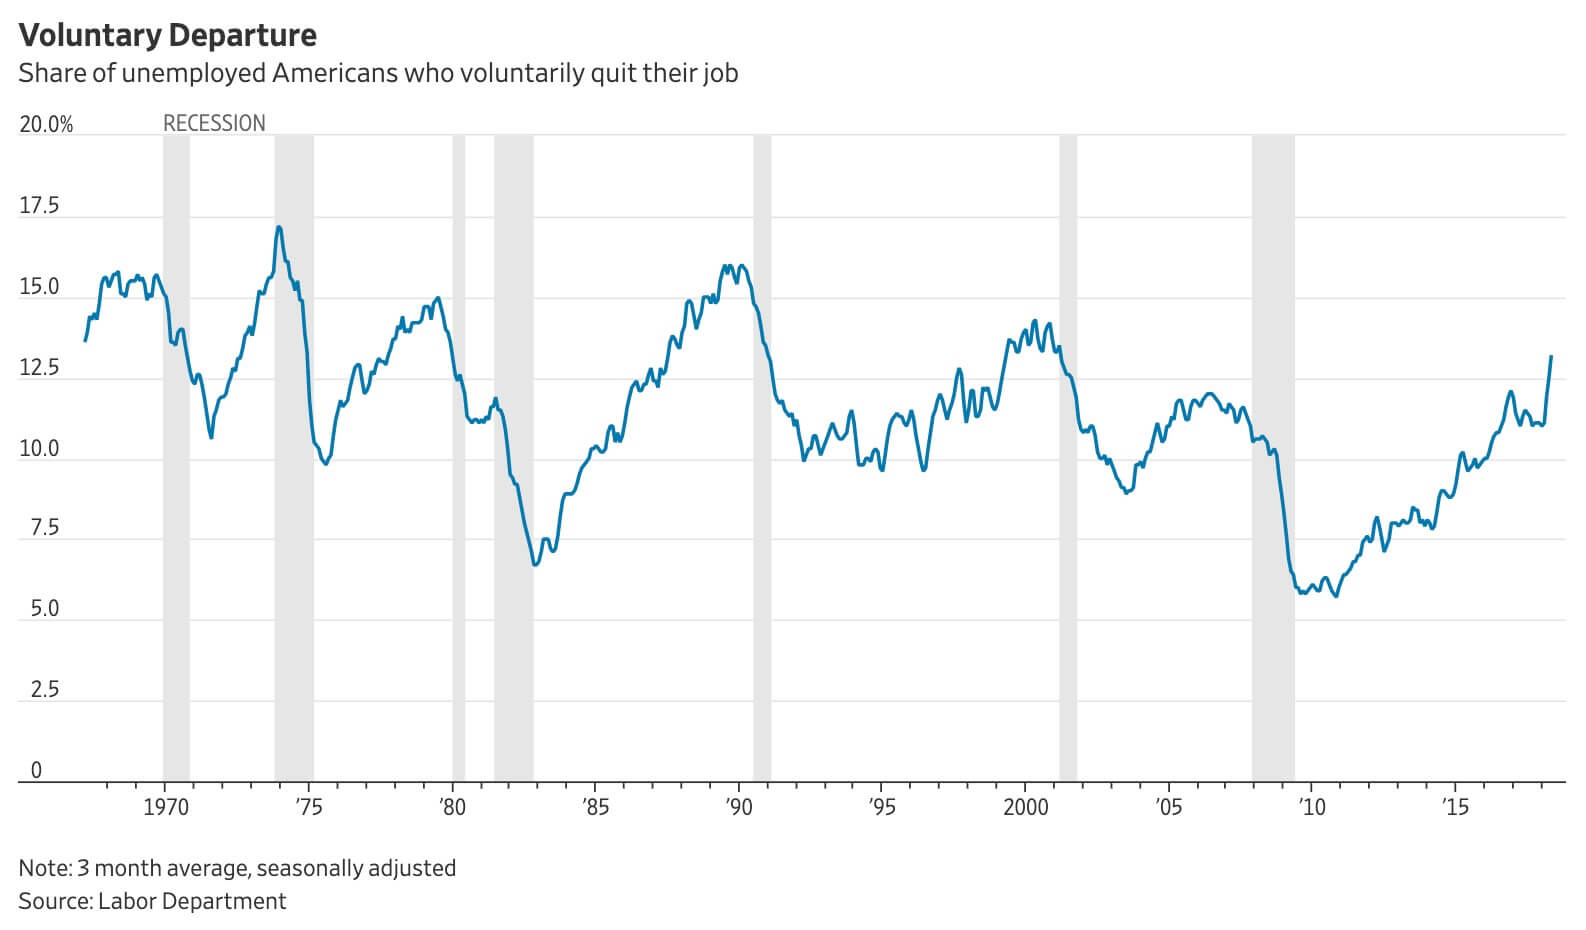 Unemployed Americans who voluntarily quit their job